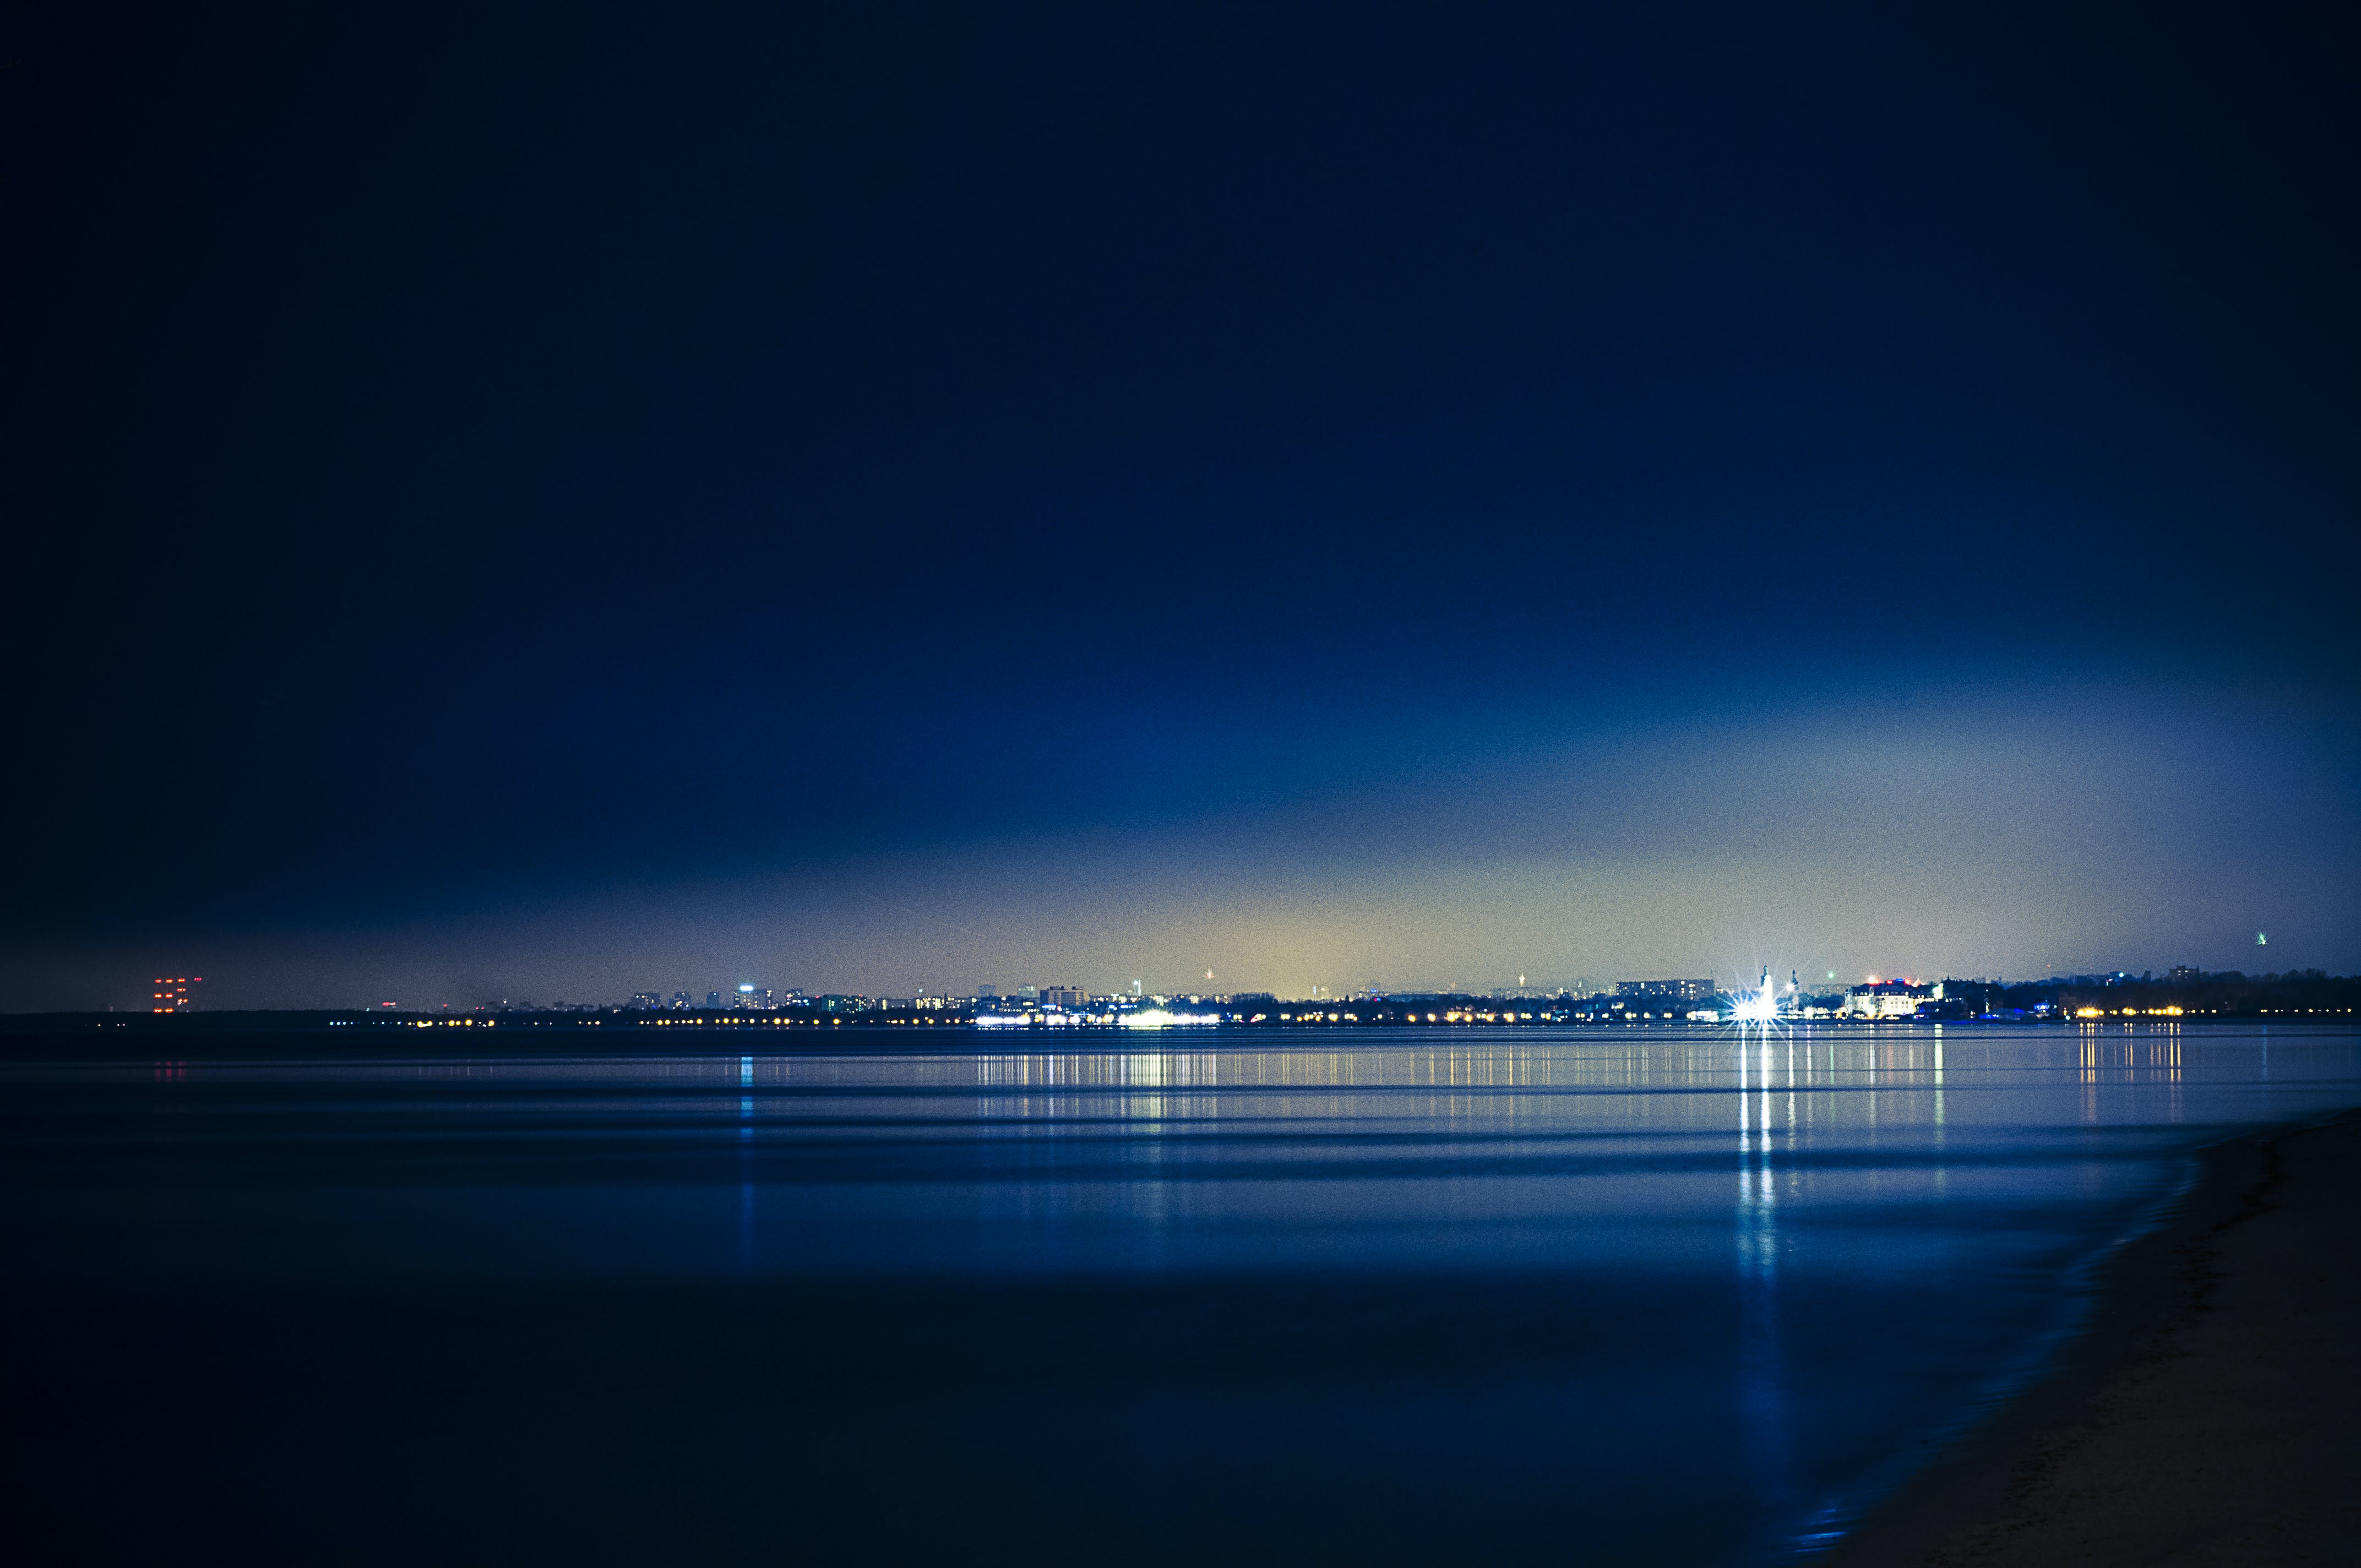 Landscape Photography of Buildings in Front of Calm Body of Water at Nighttime